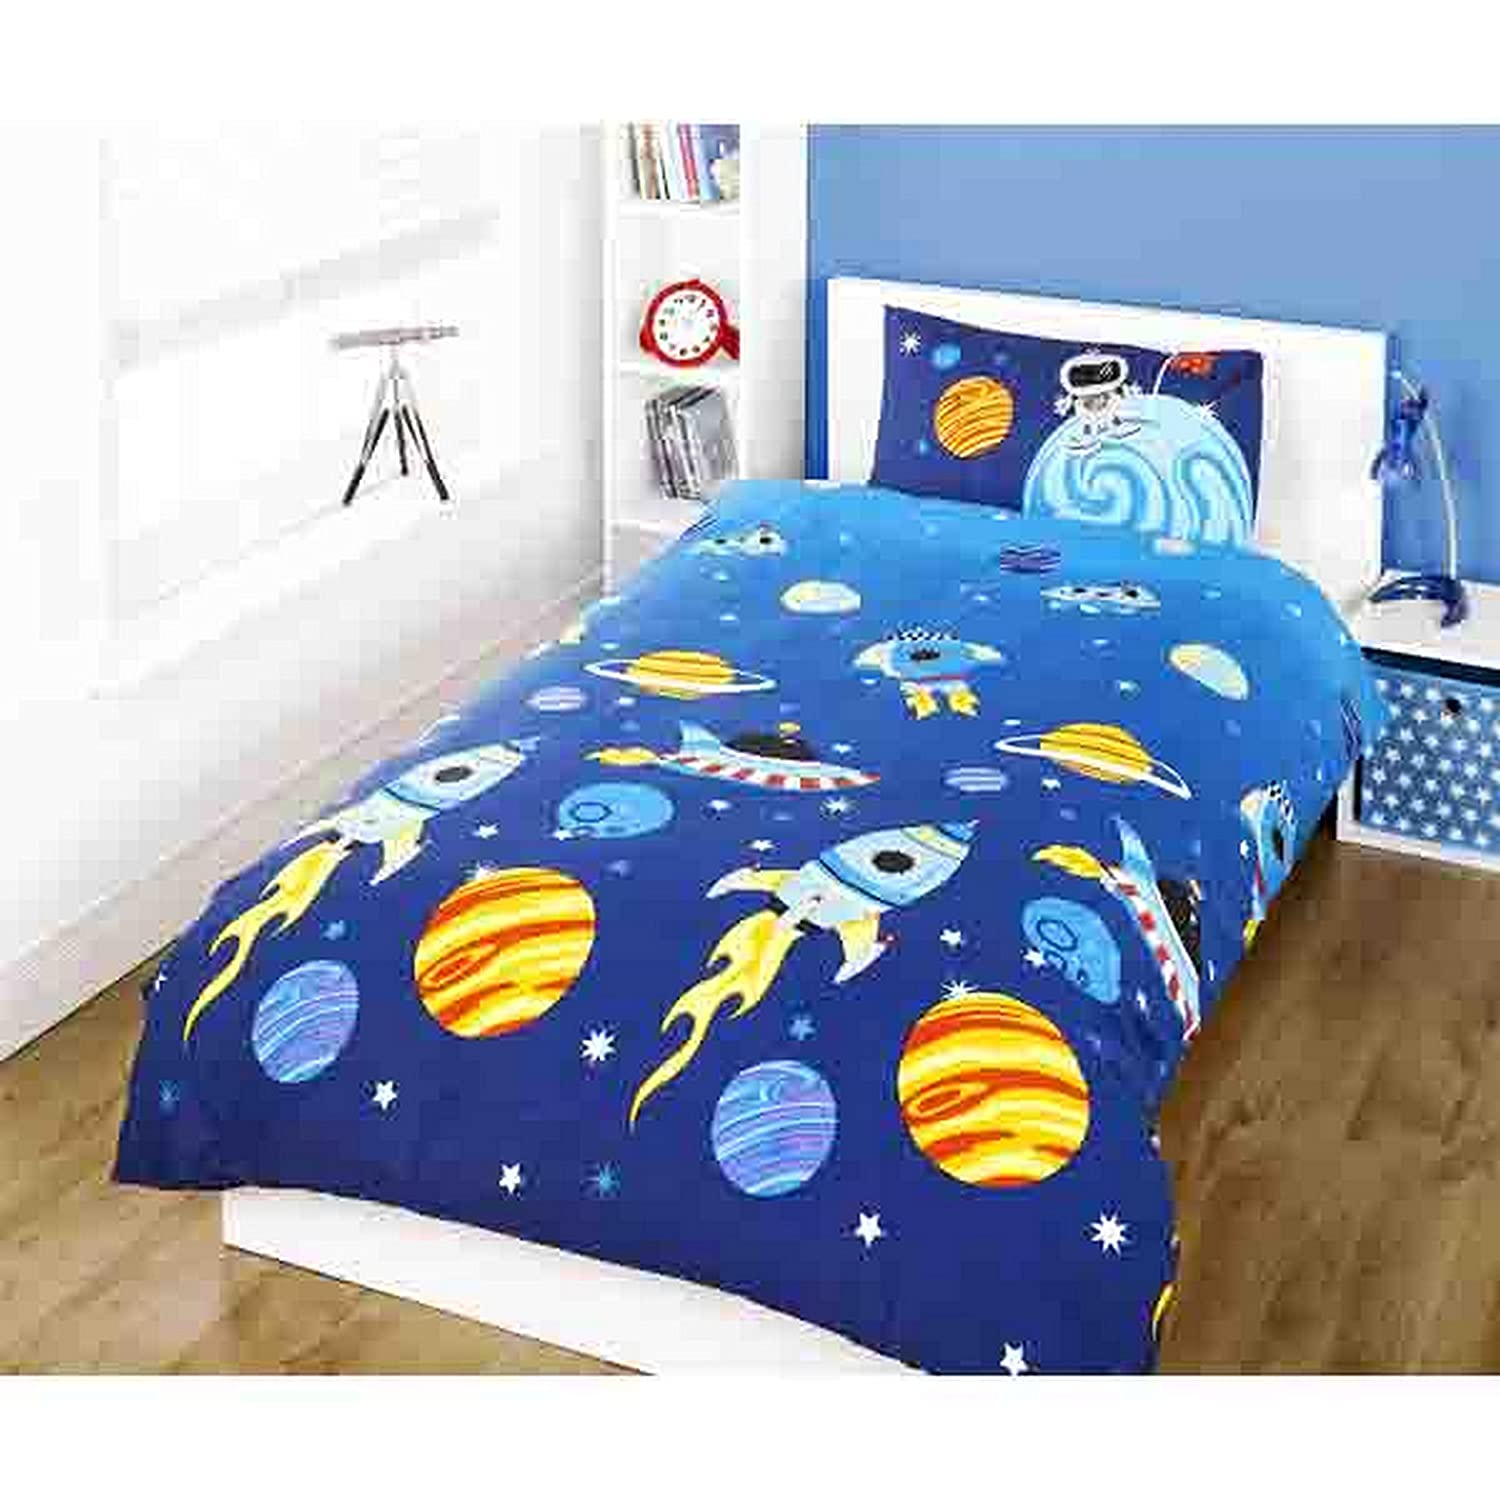 KIDS BOYS TWIN BLUE OUTER SPACE PLANETS COTTON DUVET SET QUILT COVER